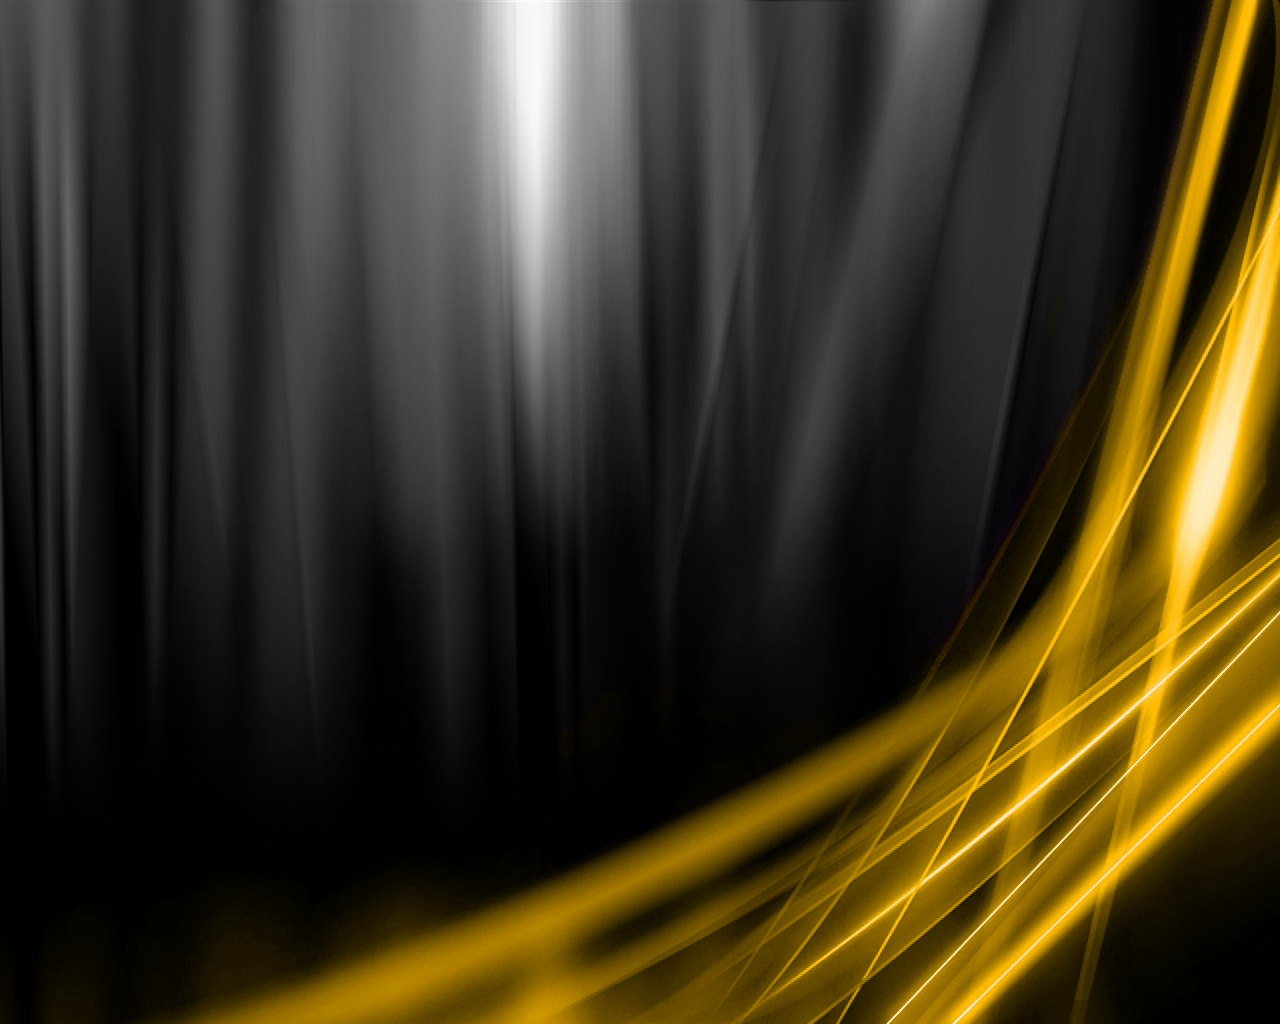 Black And Gold Hd Wallpaper Black Abstract Background Gold Abstract Wallpaper Gold Wallpaper Background